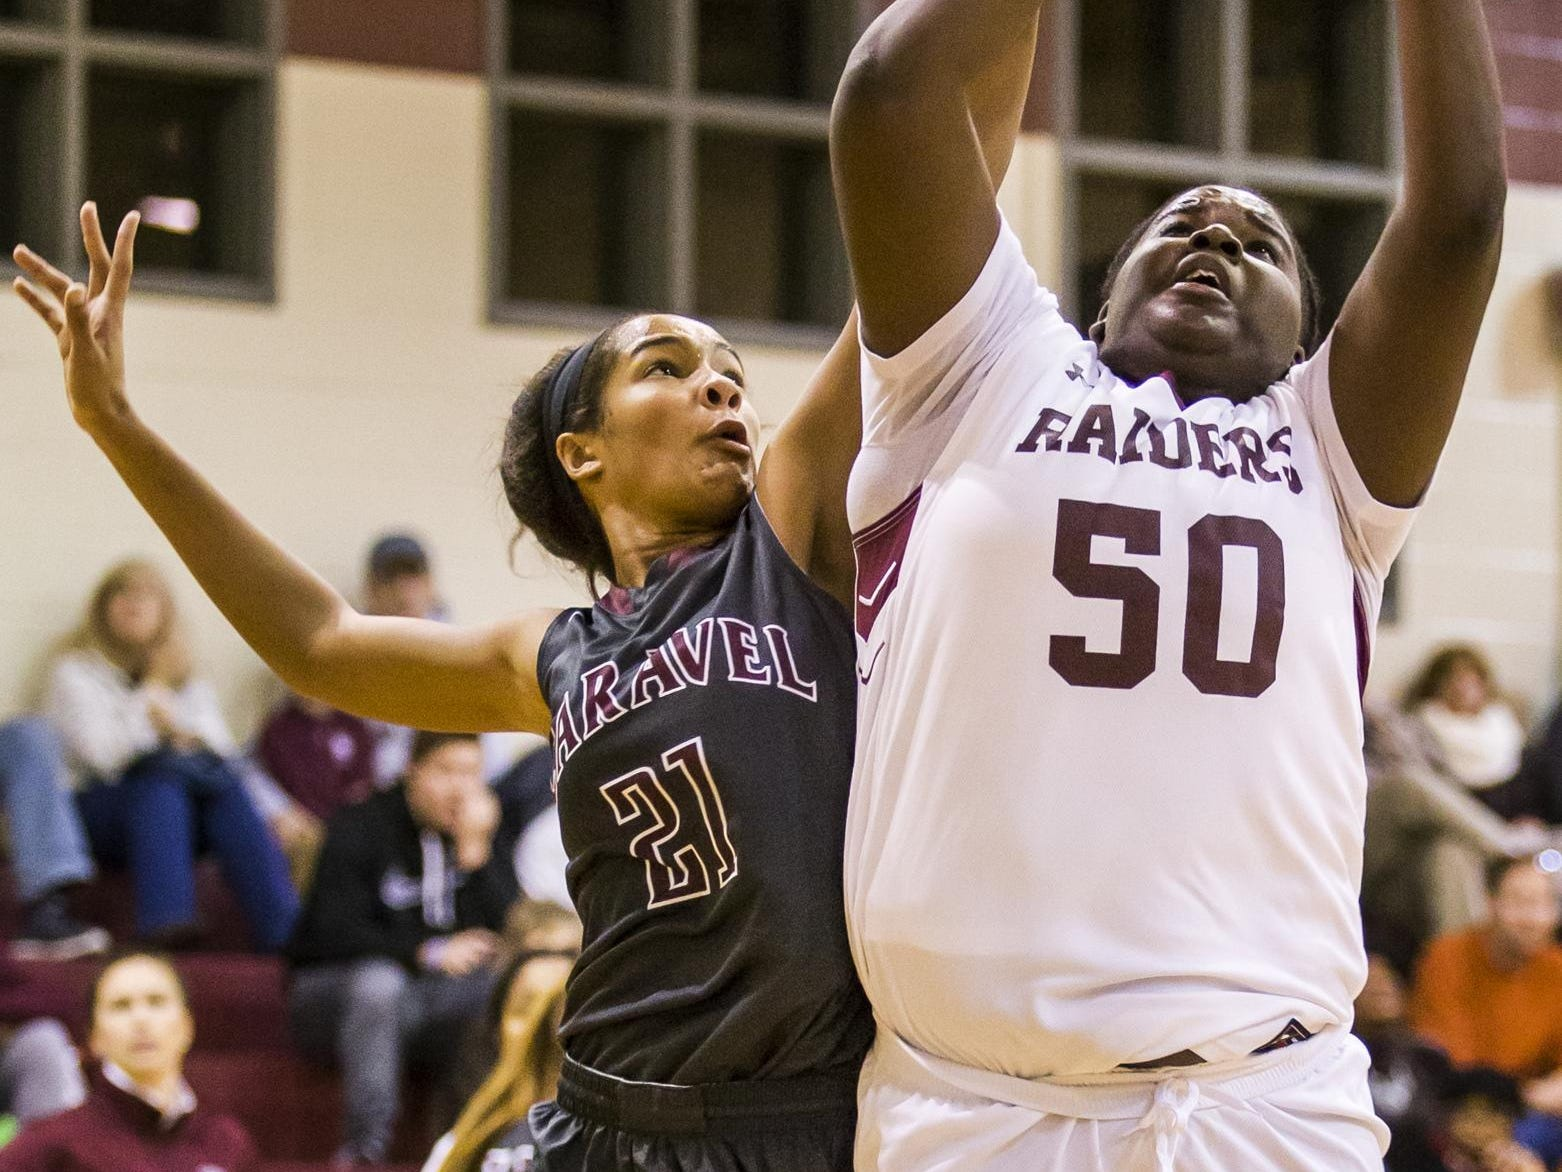 Concord's Breanna Grant (No. 50) is fouled by Caravel's Kaylee Otlowski (No. 21) as she puts up a shot in the first half of Caravel's 42-26 win over Concord at Concord High School on Monday night.